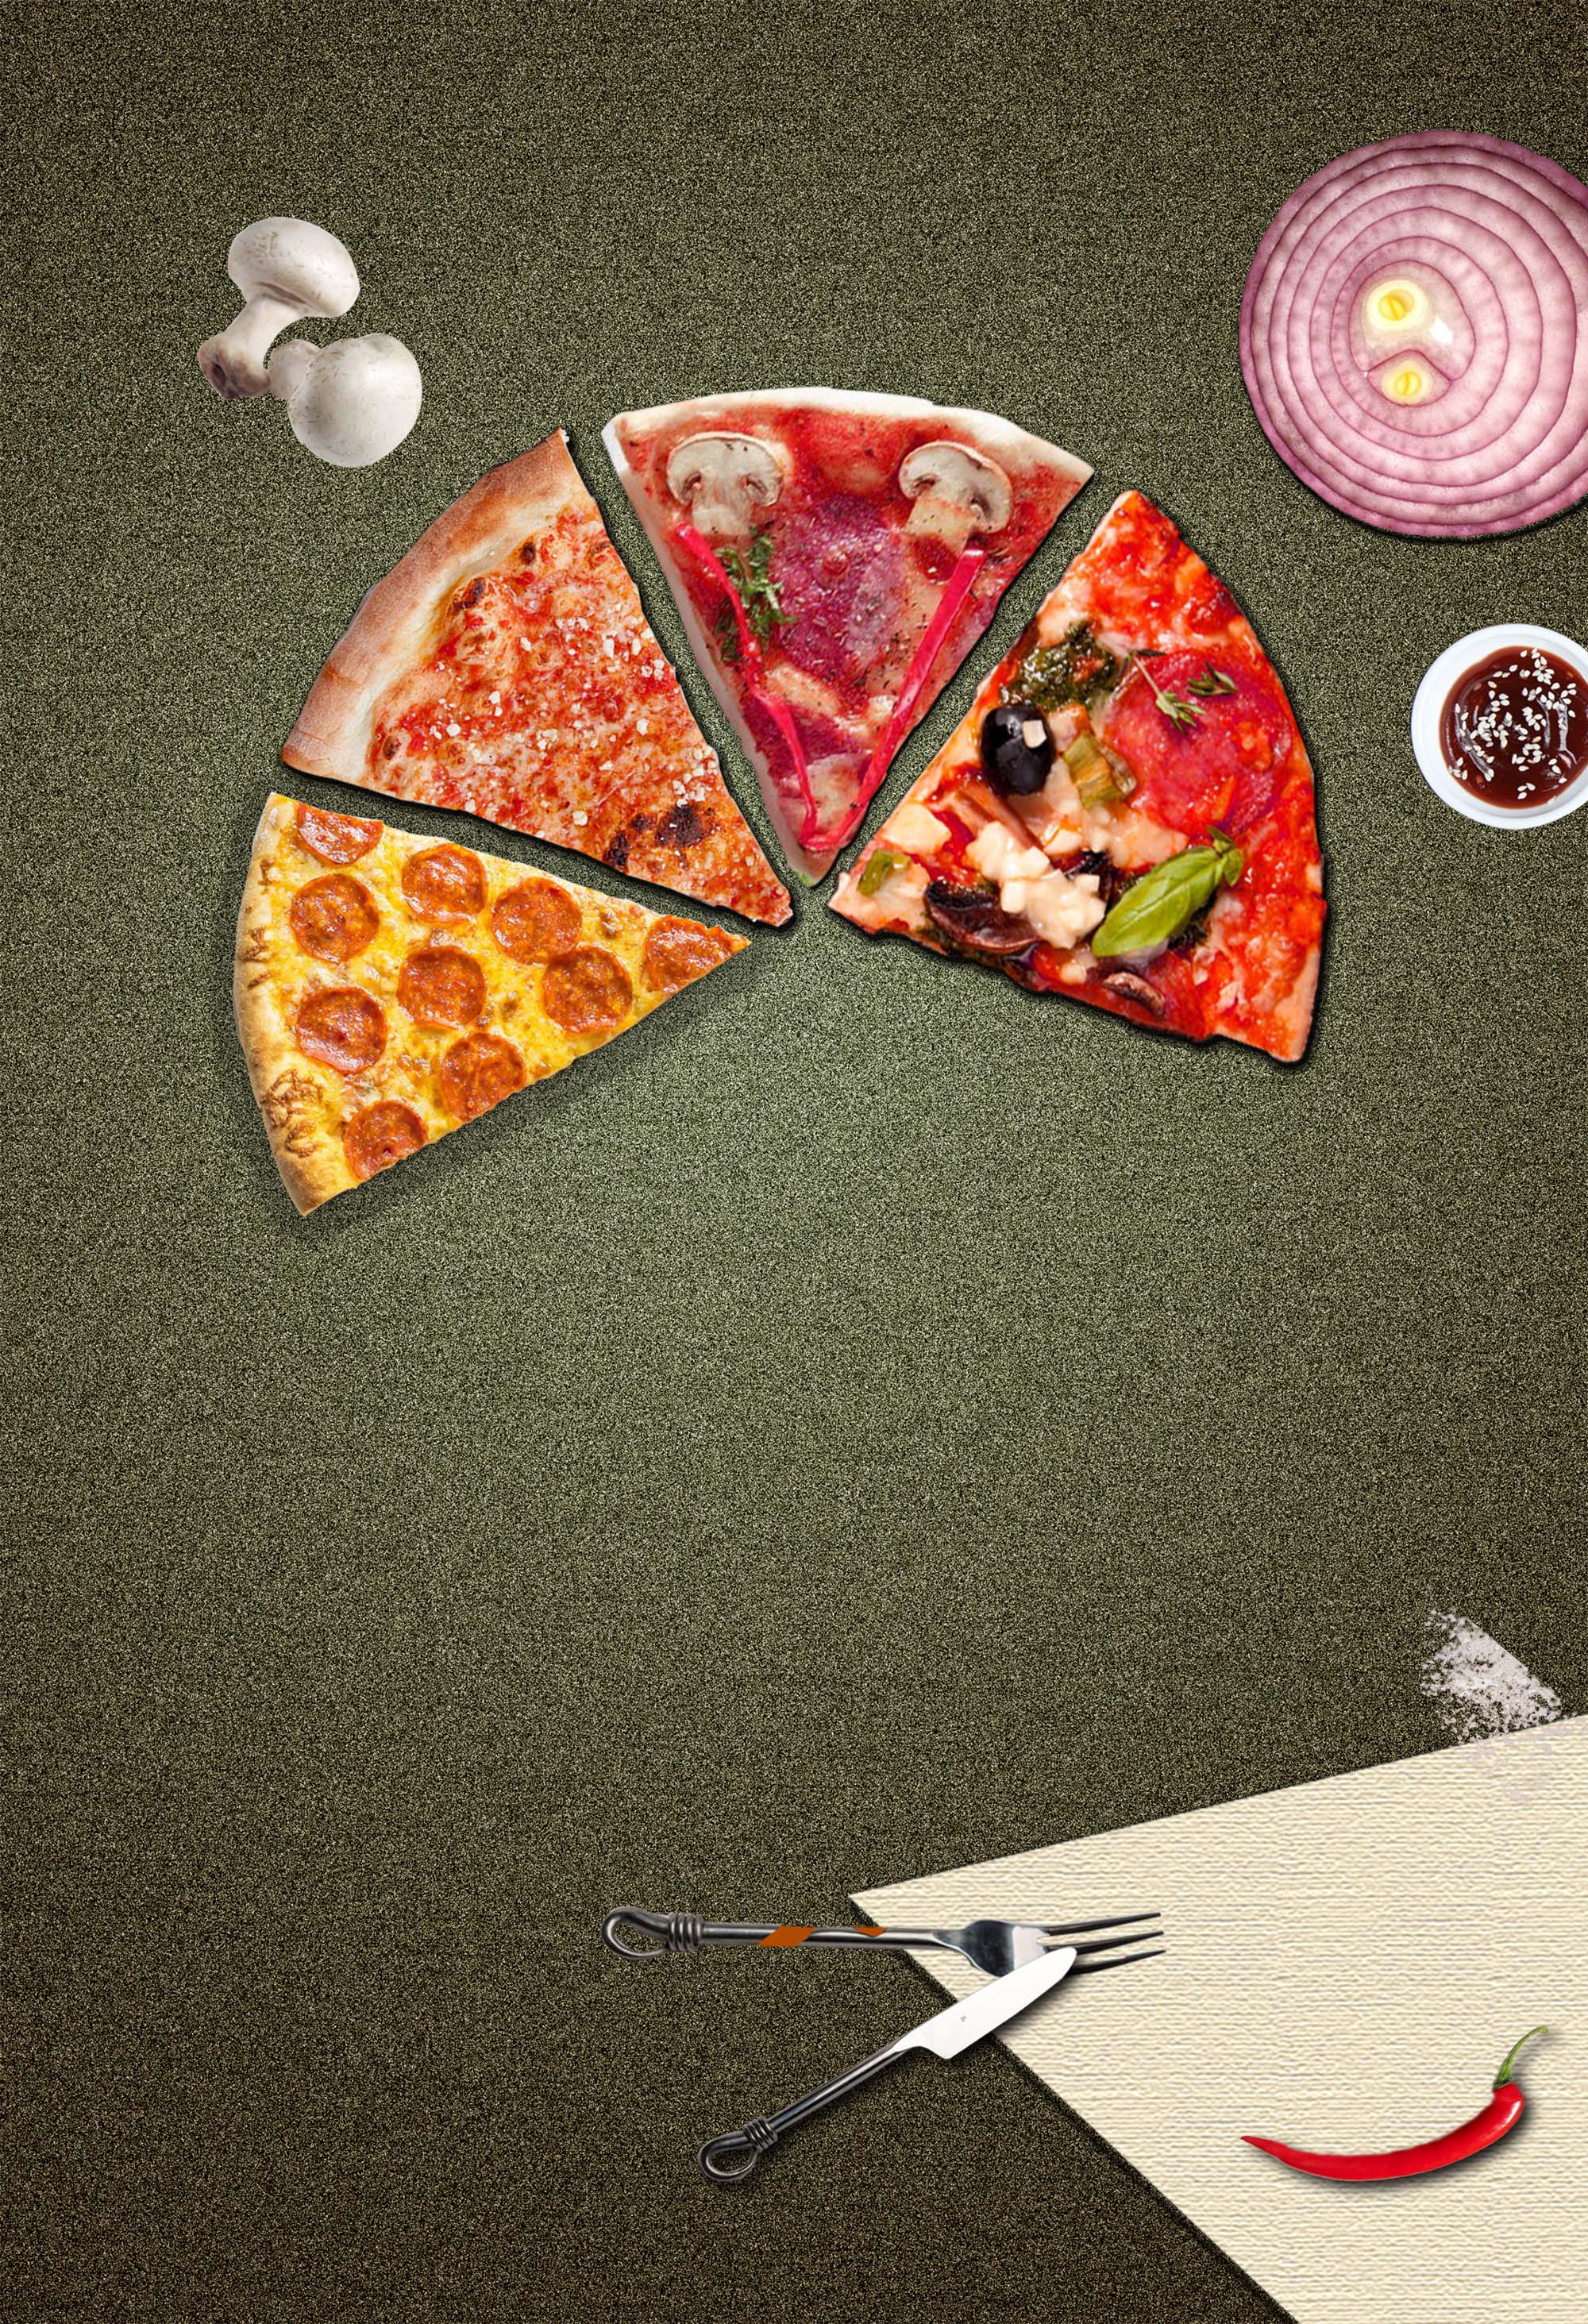 creative pizza gourmet poster design  delicious  food